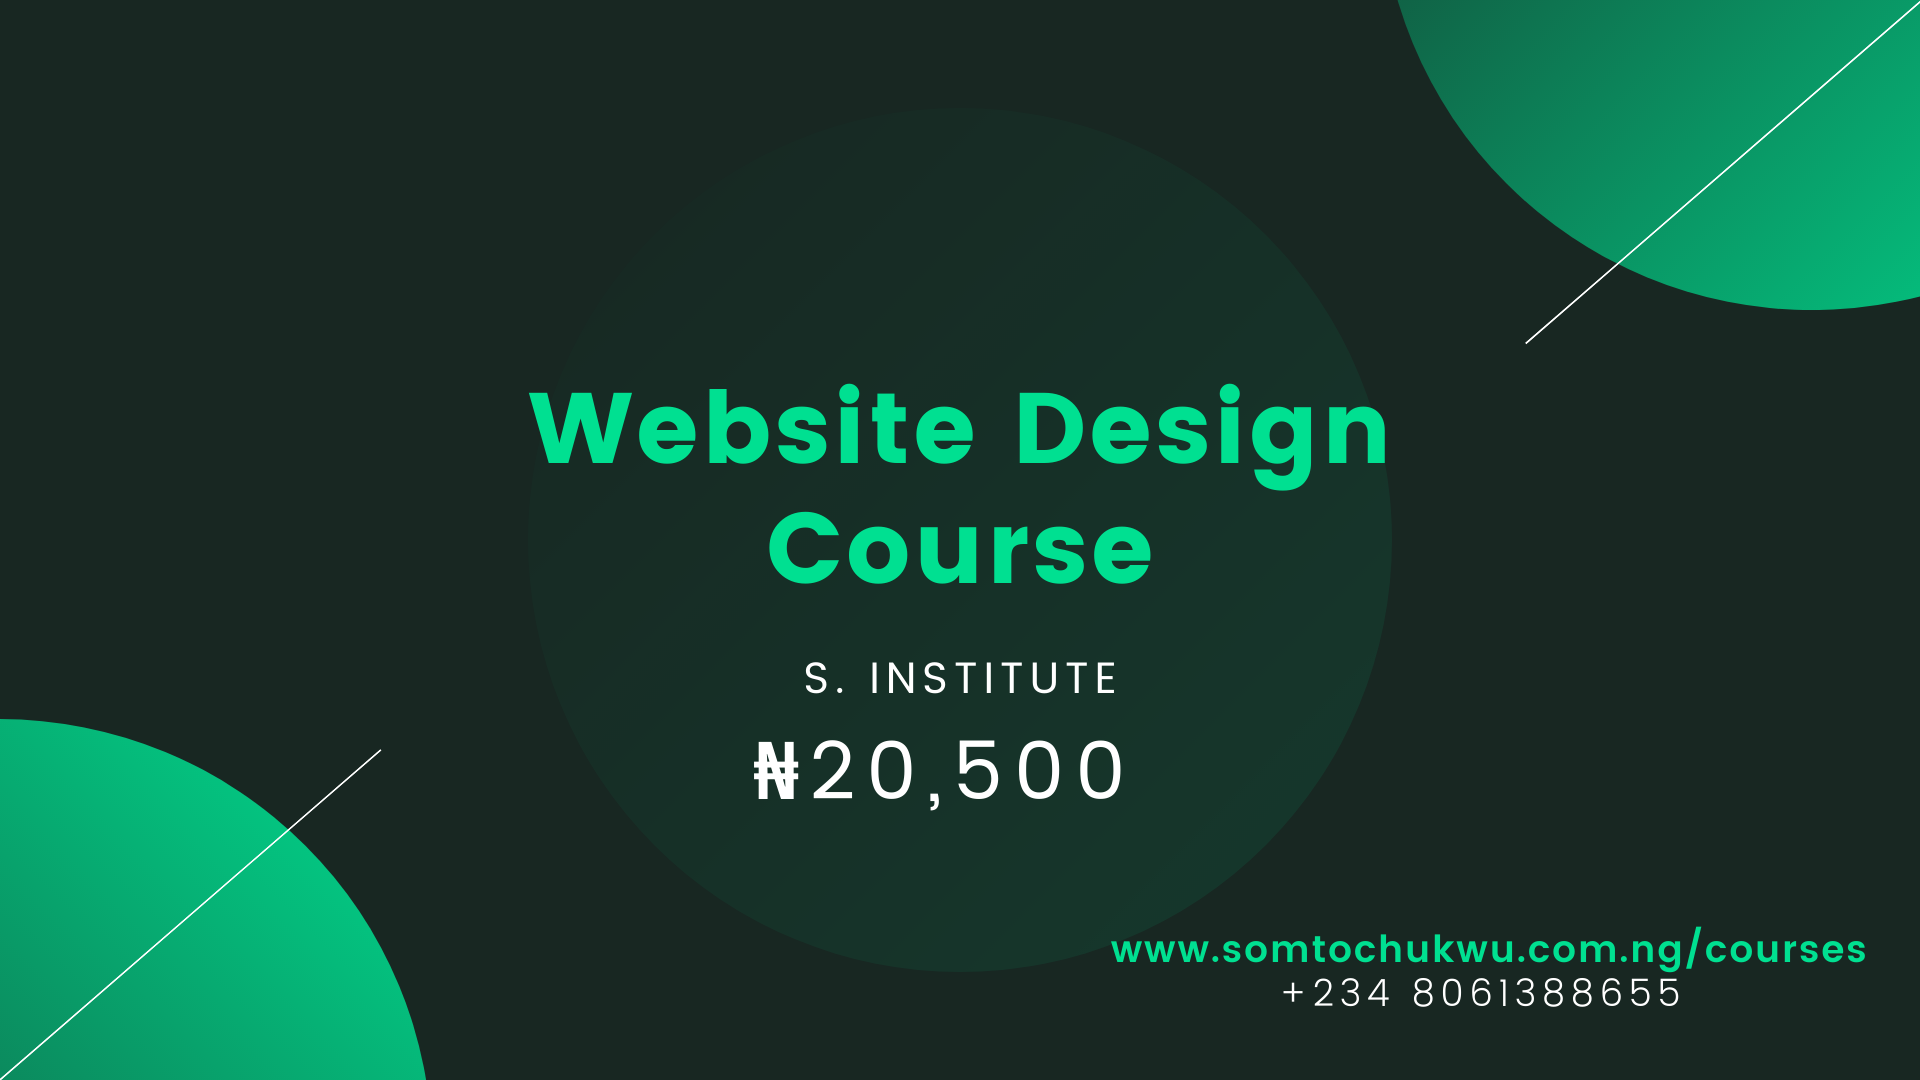 Website Design Course of S. Tech Institute (www.somtochukwu.com.ng)